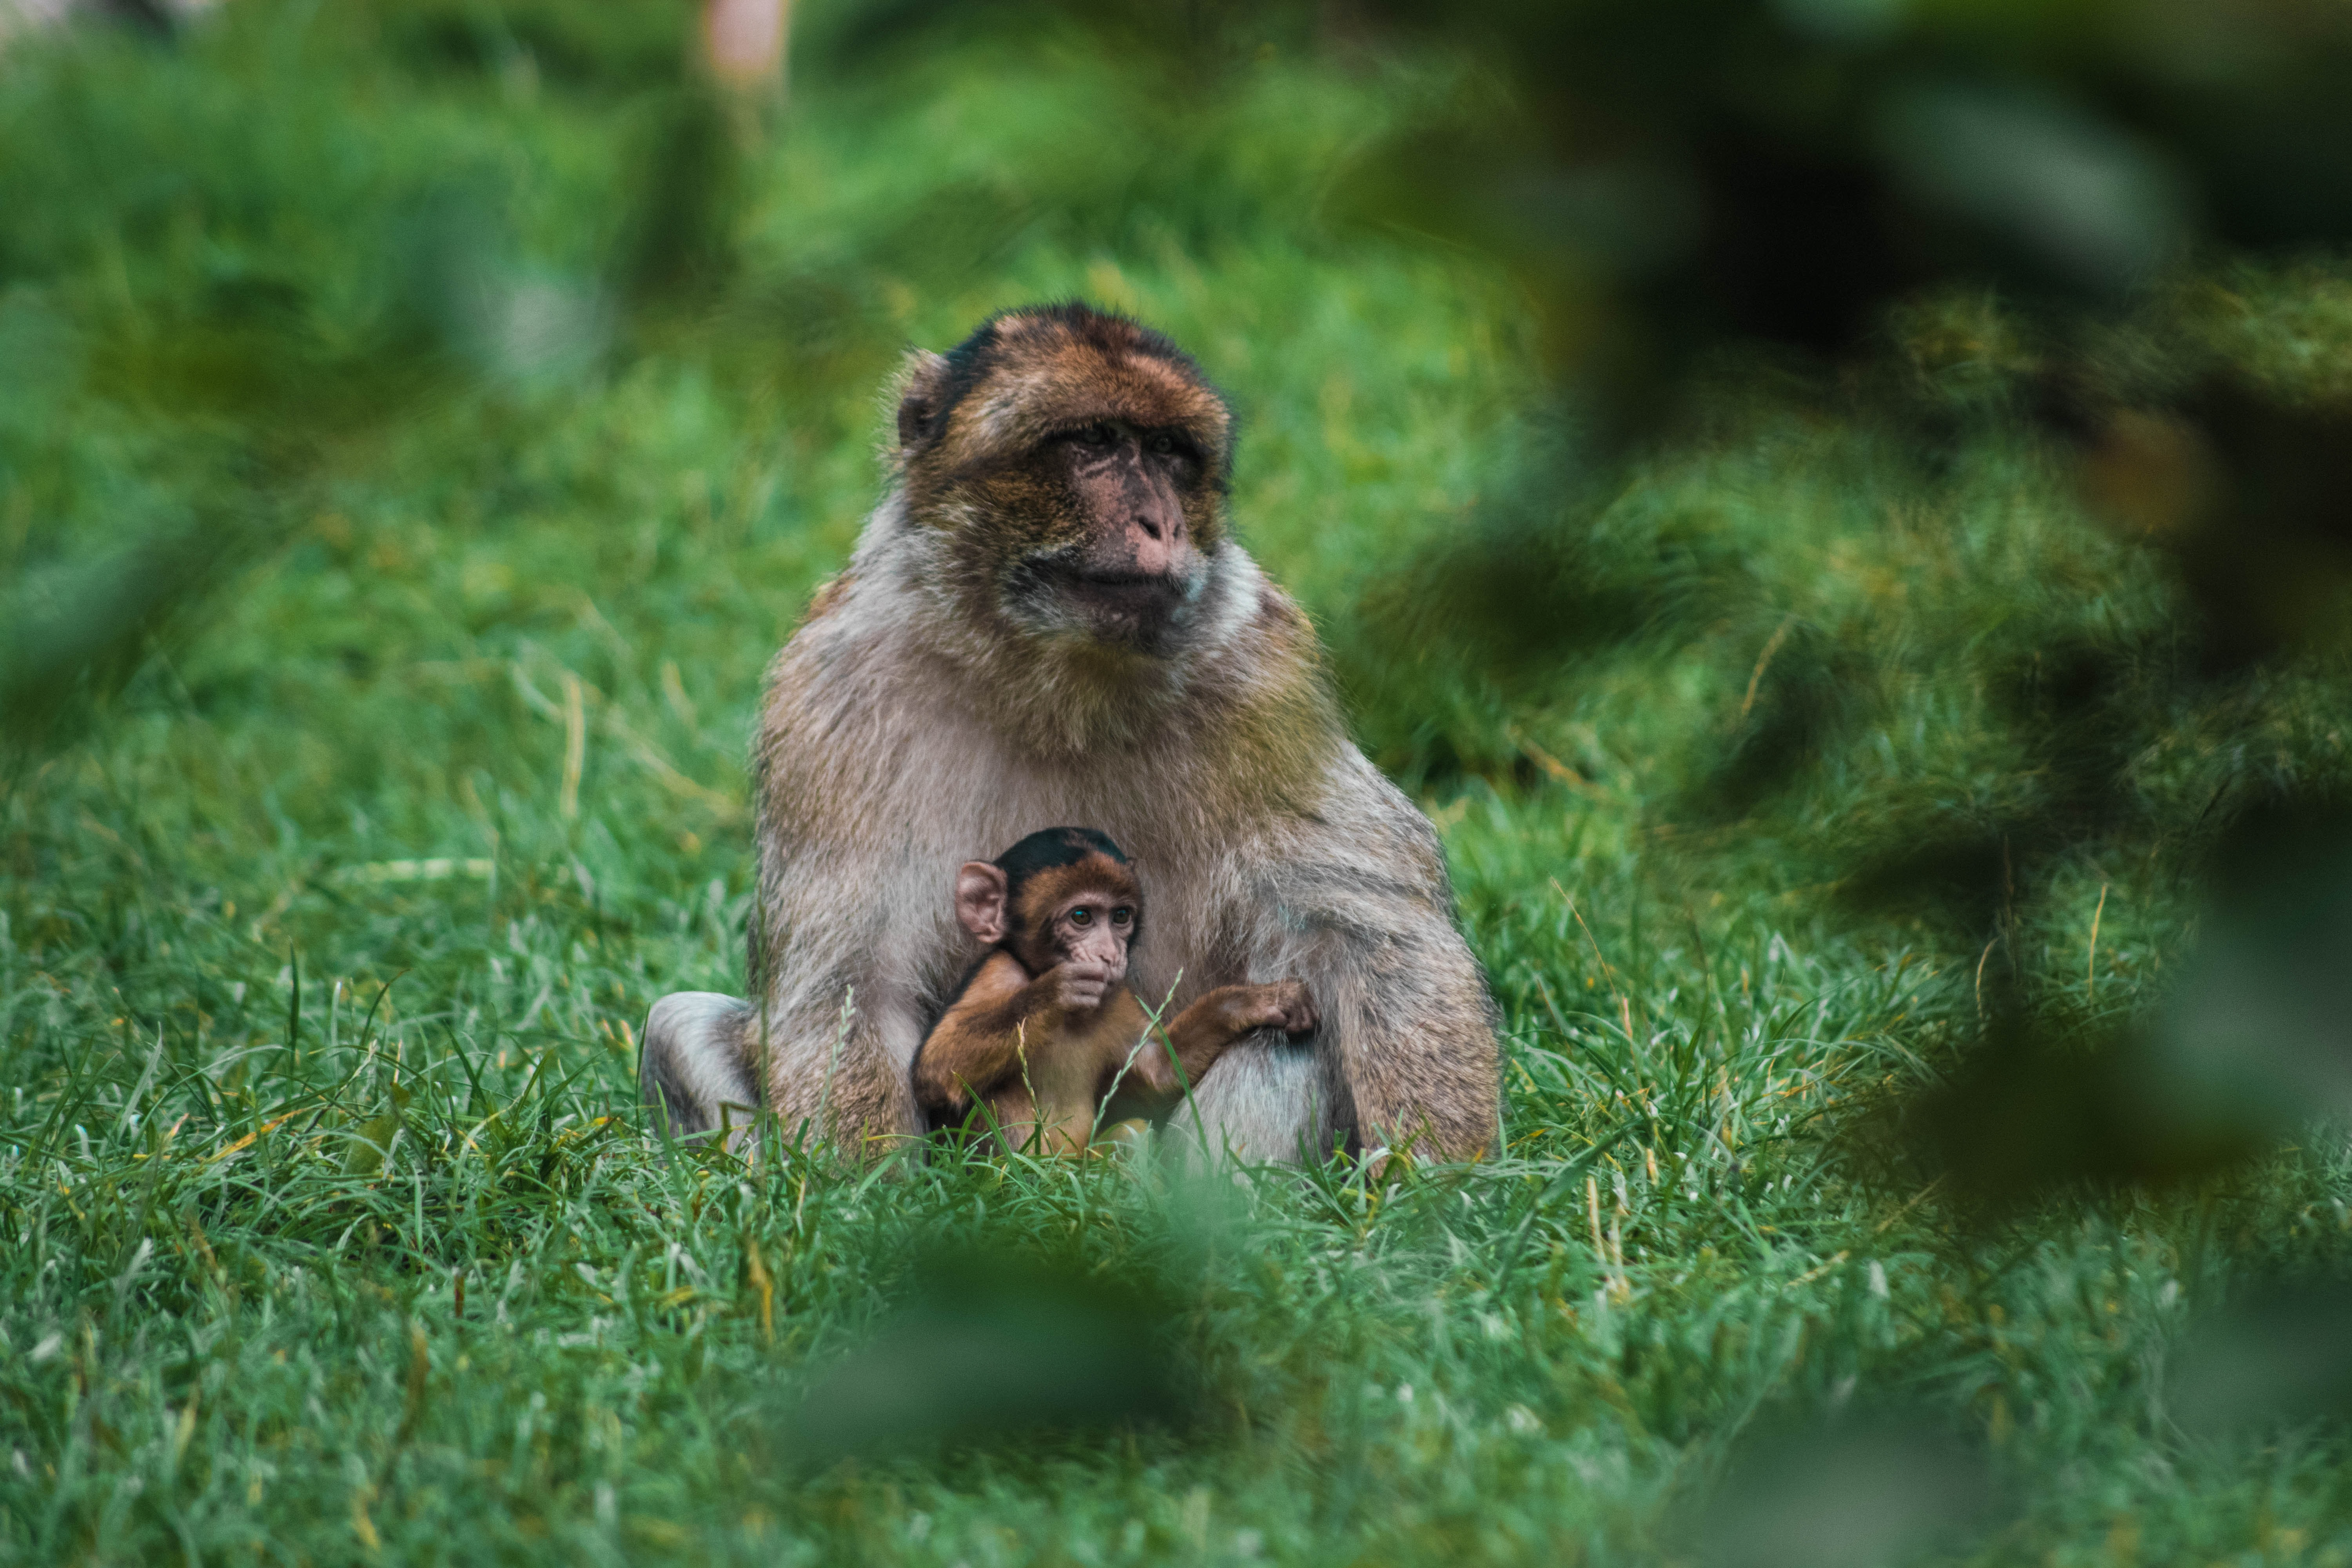 brown monkey with baby sitting on green grass at daytime